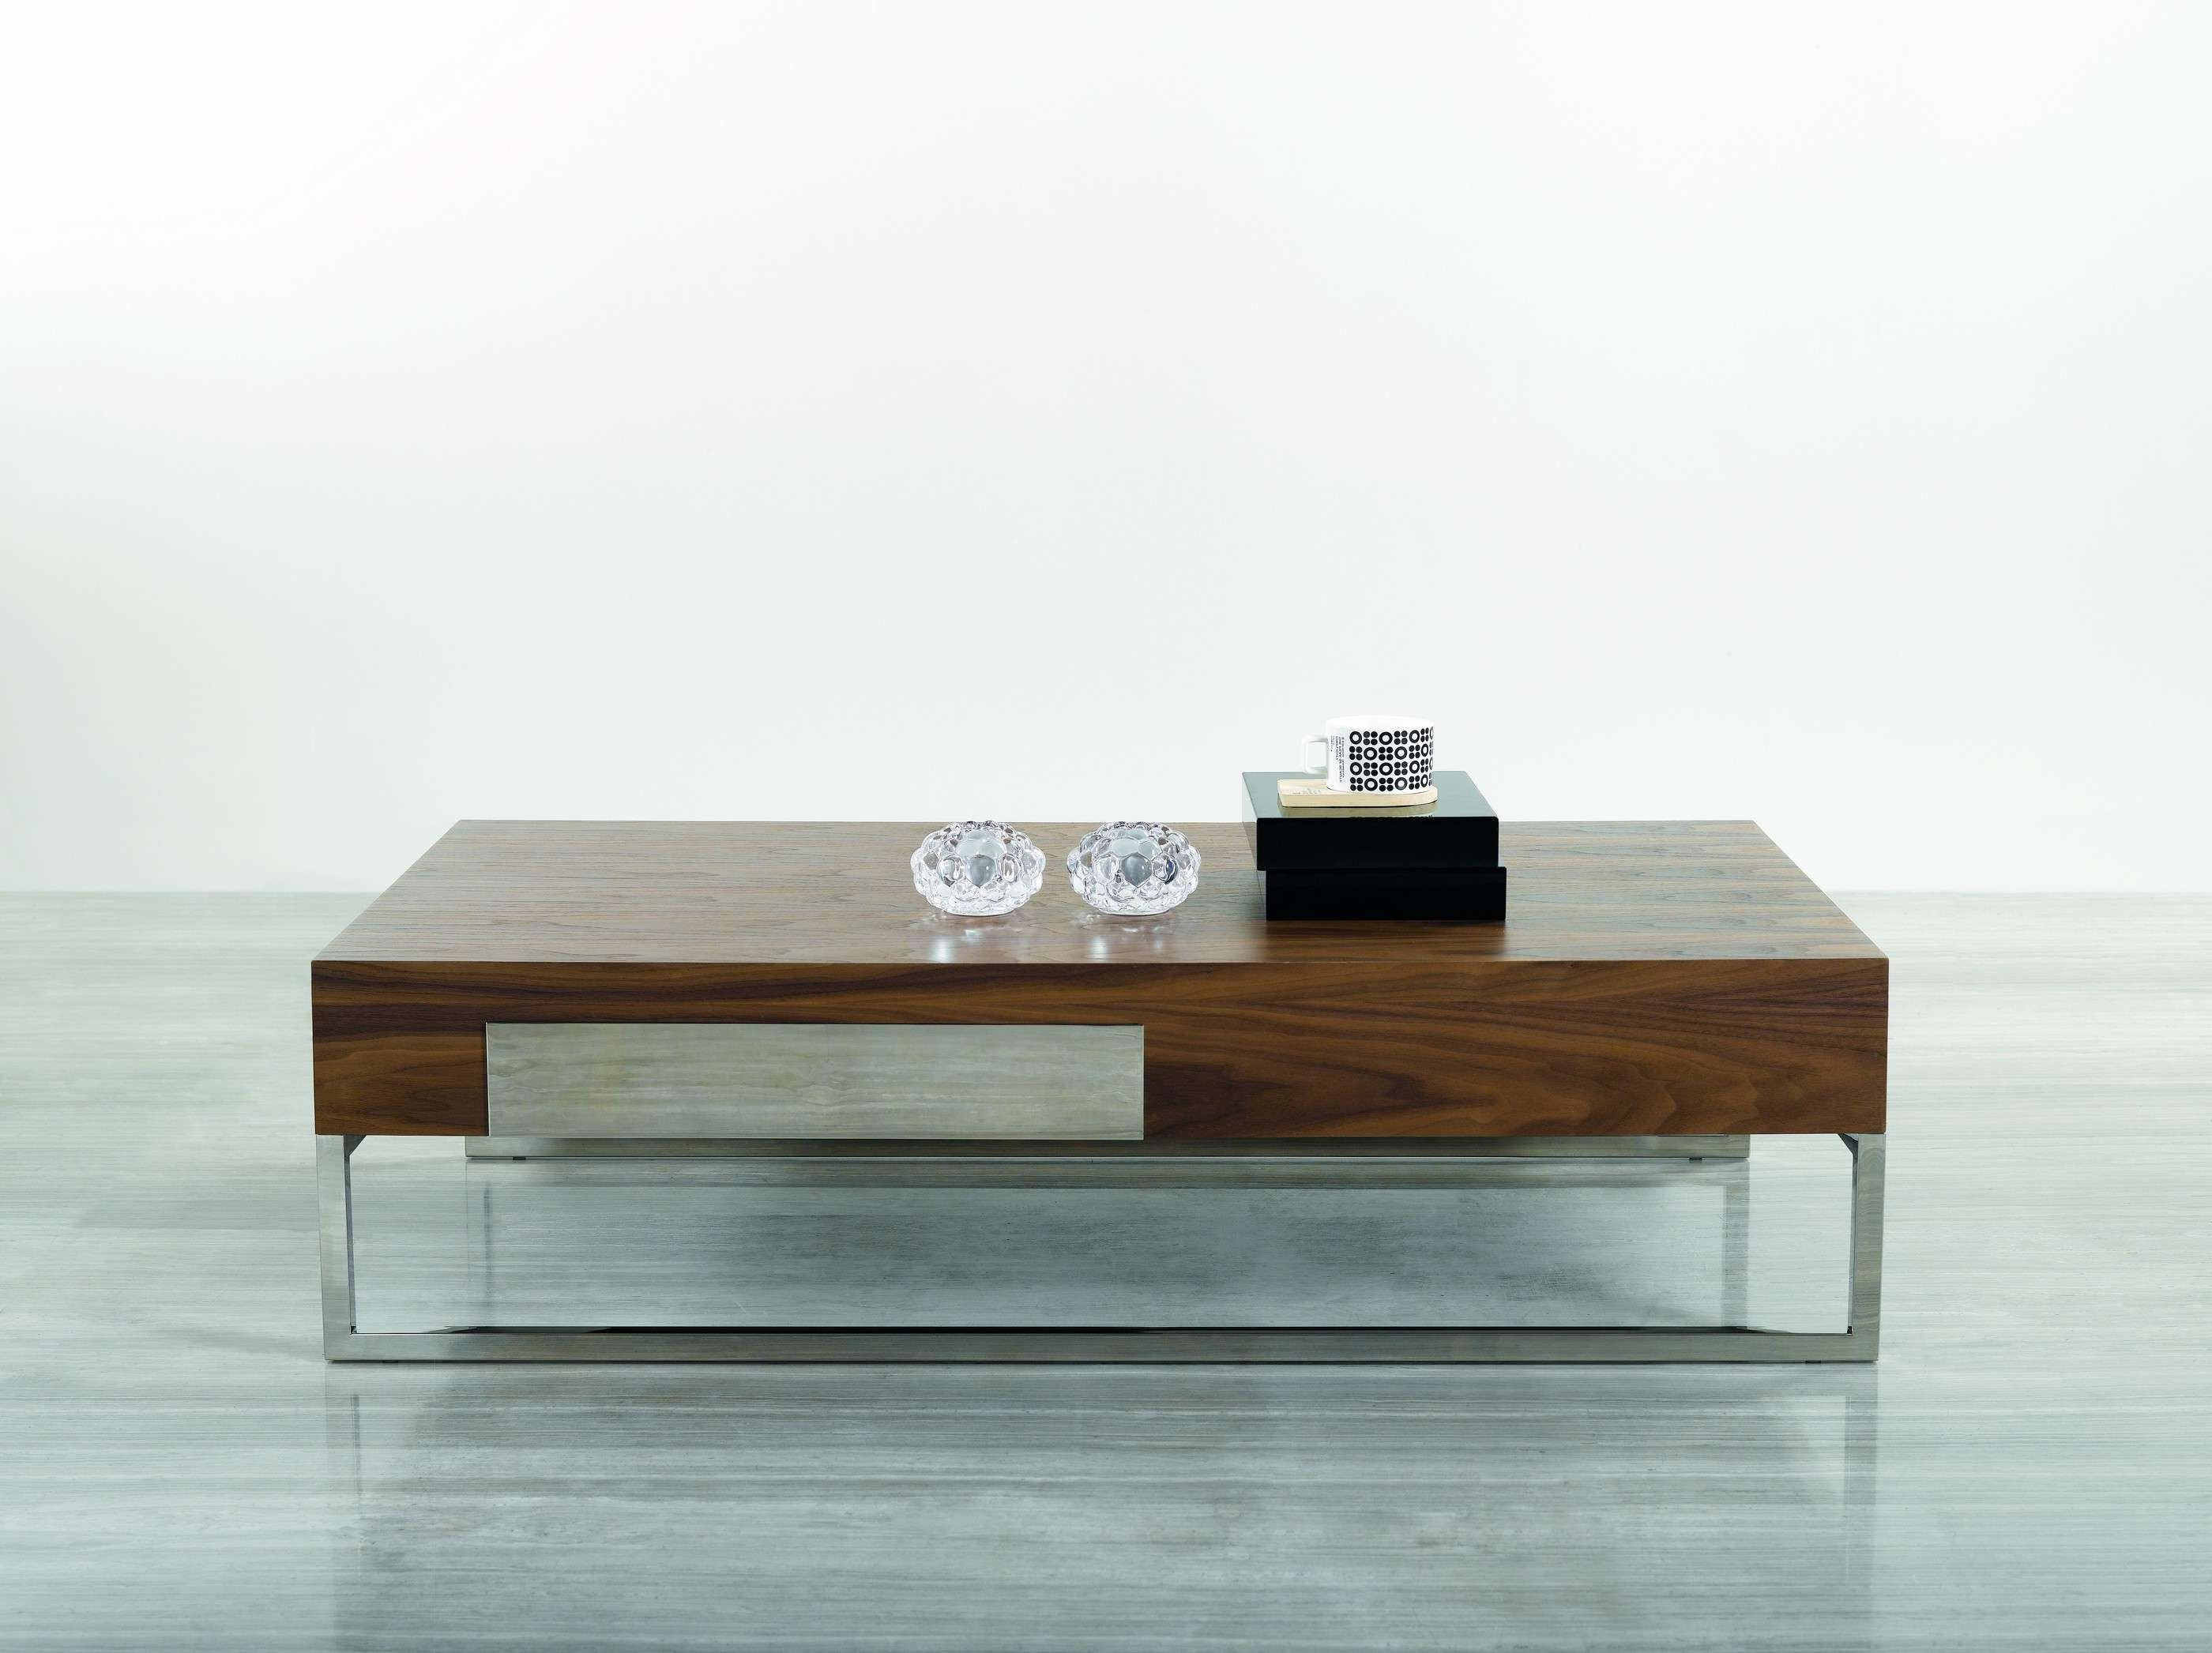 Creative Modern Coffee Tables Cheap On Interior Home Design Throughout Best And Newest Modern Coffee Tables (View 7 of 20)